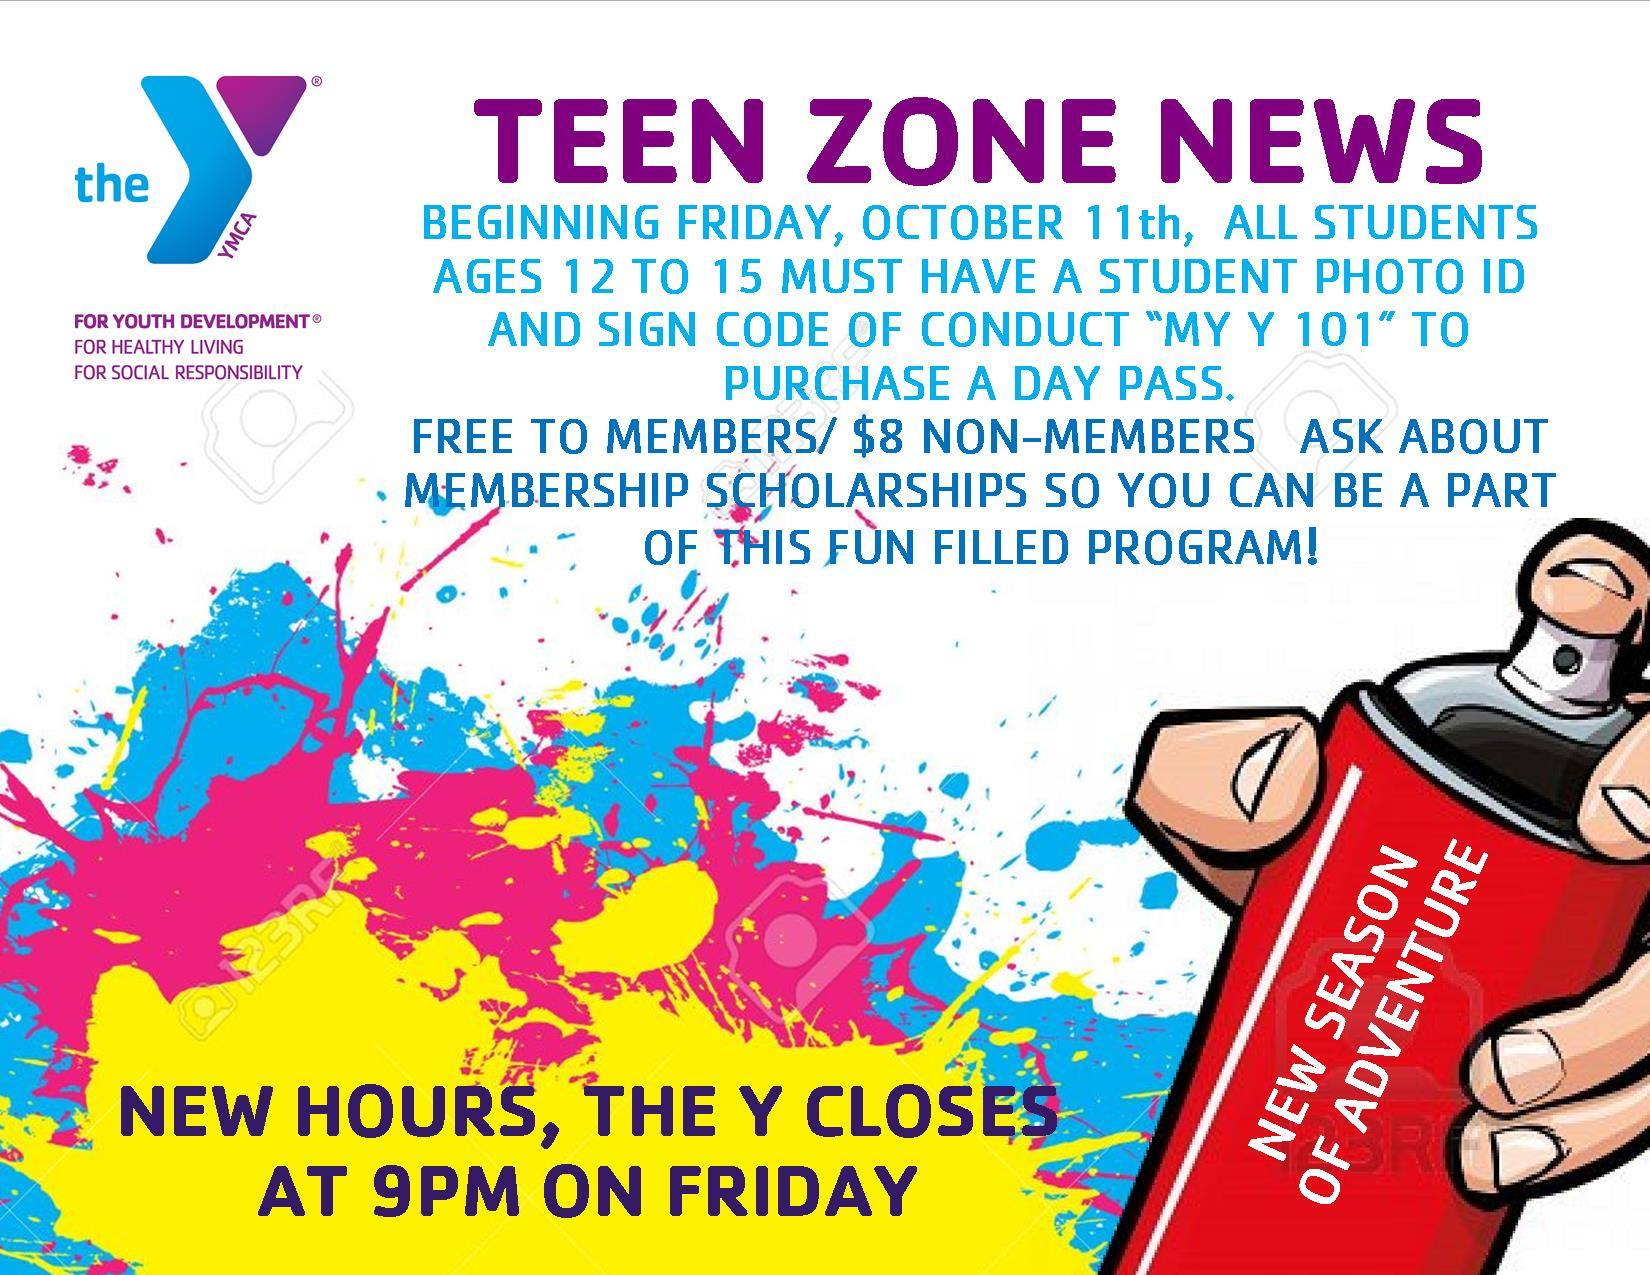 http://www.mtrymca.org/sites/mtrymca.org/assets/images/programs/Teen-Zone-News.jpg